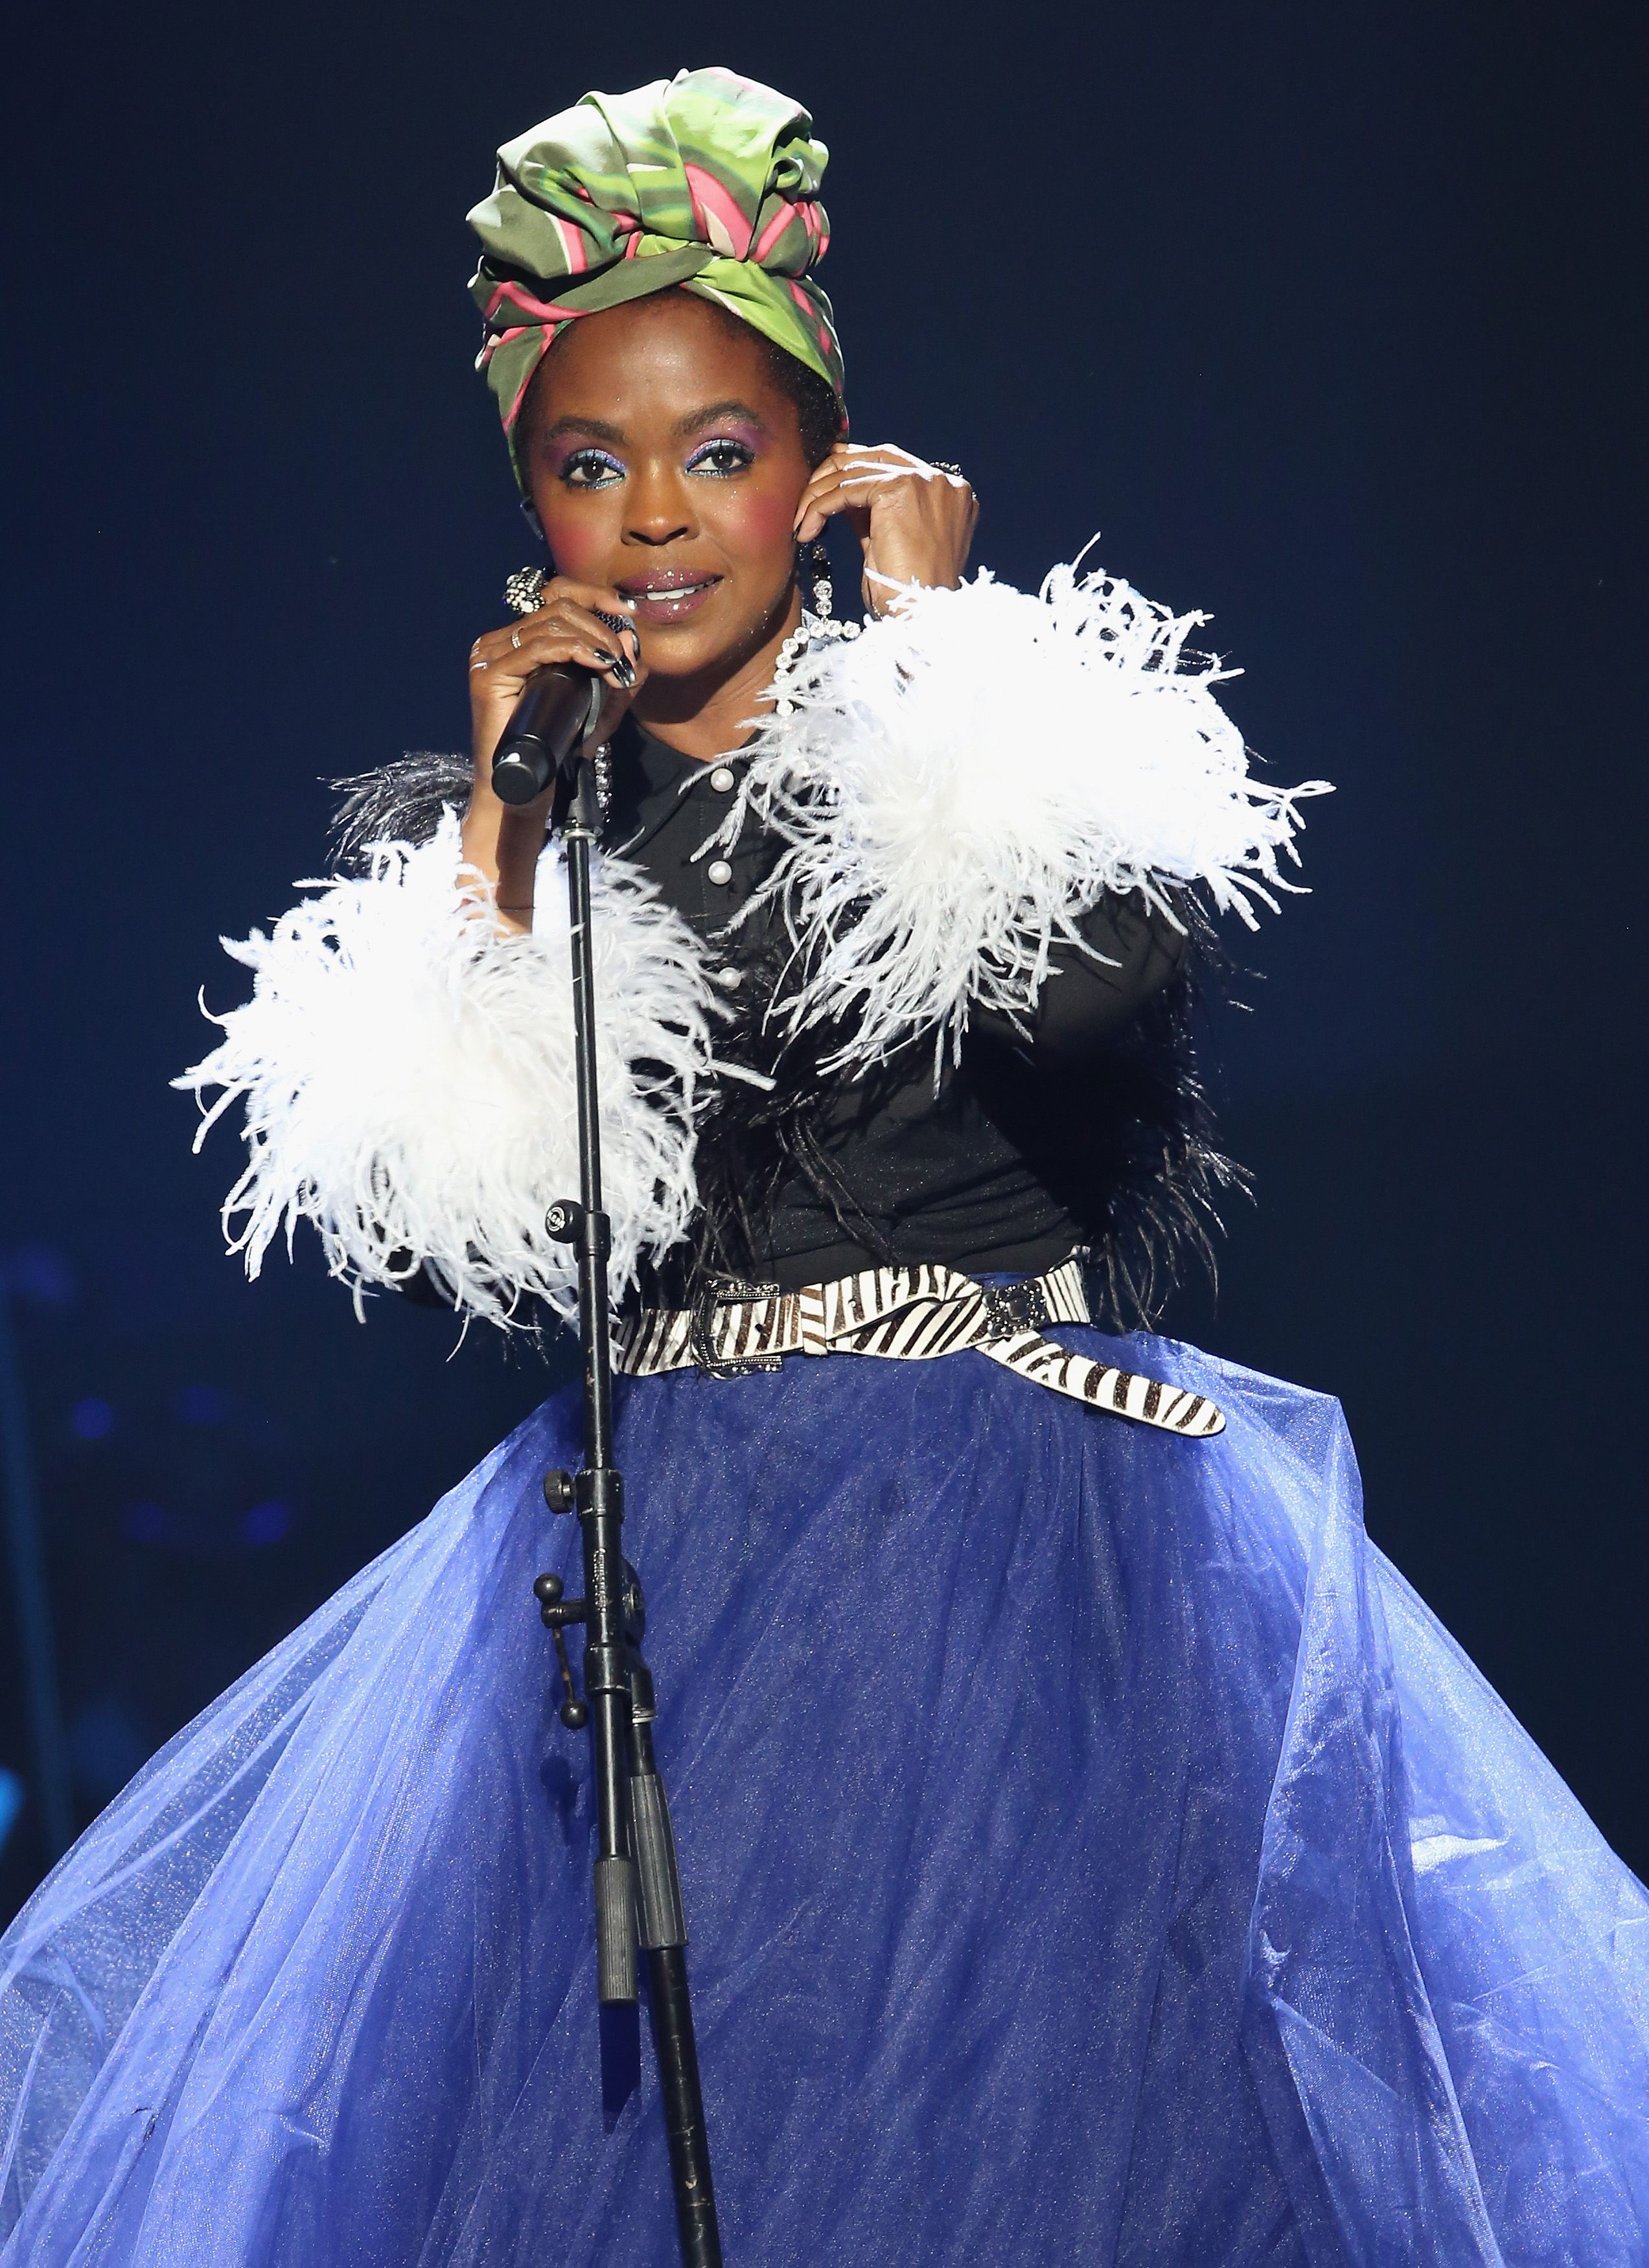 Rap icon Lauryn Hill paying tribute to Nina Simone at the 33rd Annual Rock & Roll Hall of Fame induction ceremony in April 2018. | Photo: Getty Images